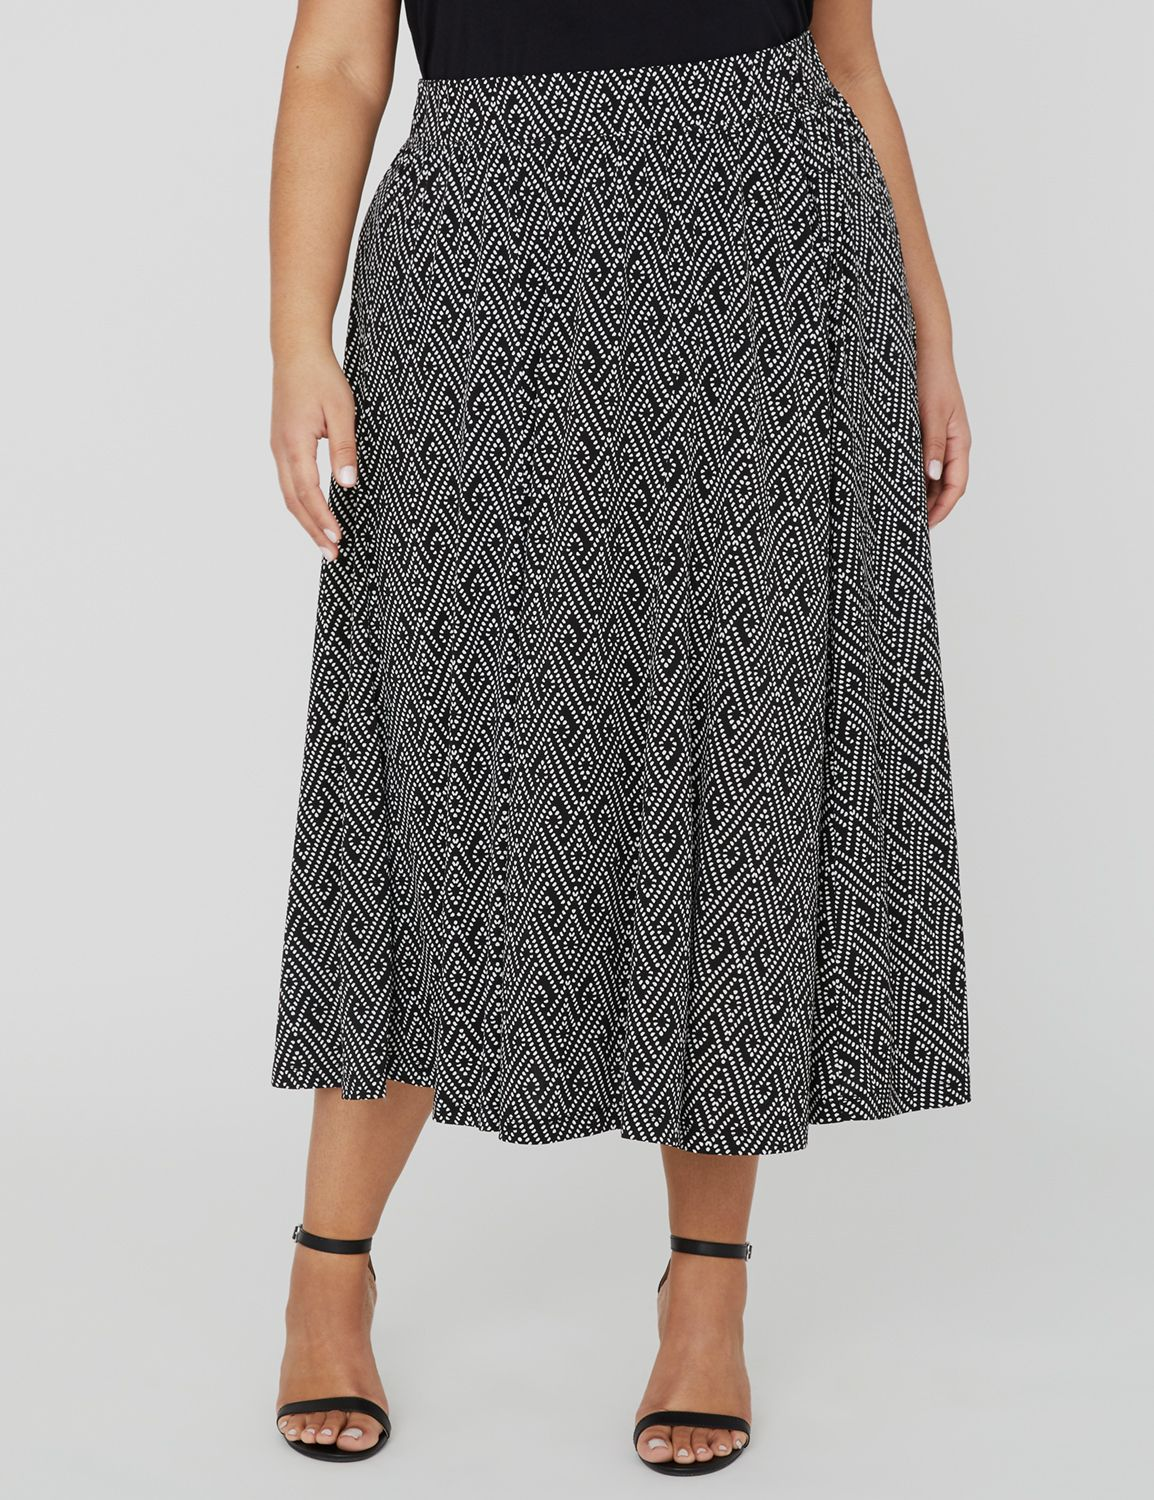 AnyWear Daydream Midi Skirt 1088564 Anywear ITY Printed Midi Sk MP-300104834